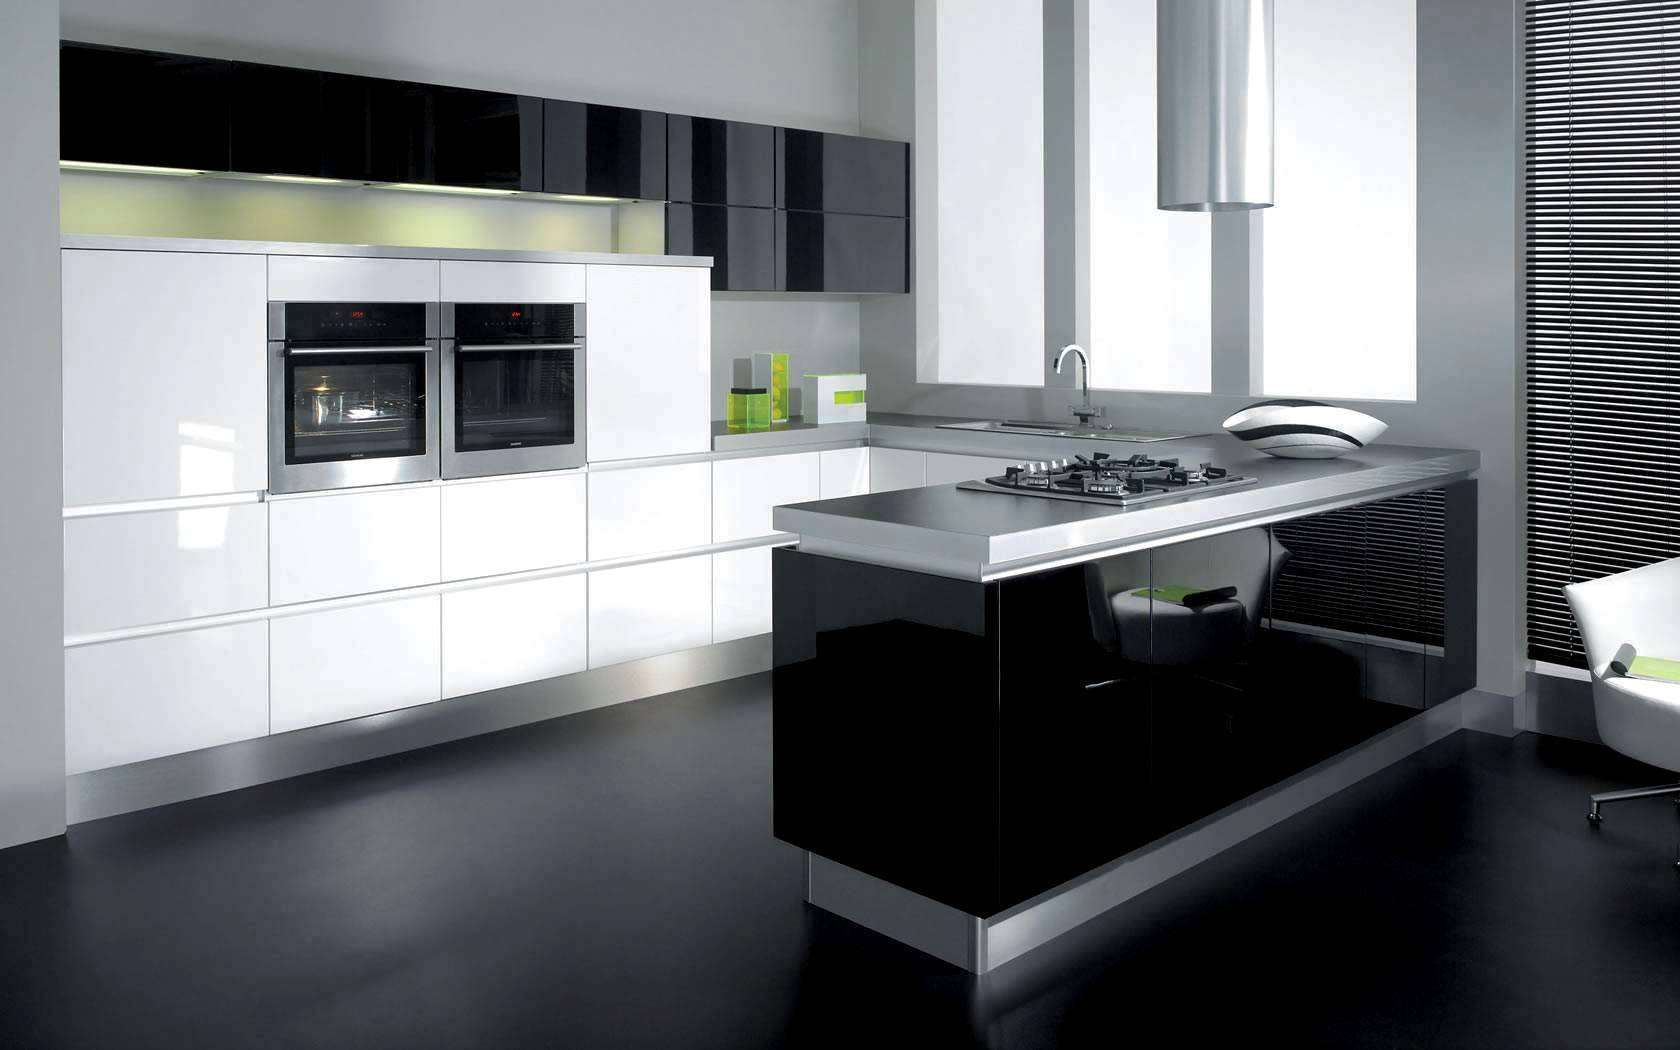 Kitchen Cabinets Bangalore modular kitchen bangalore| kitchen cabinets design bangalore